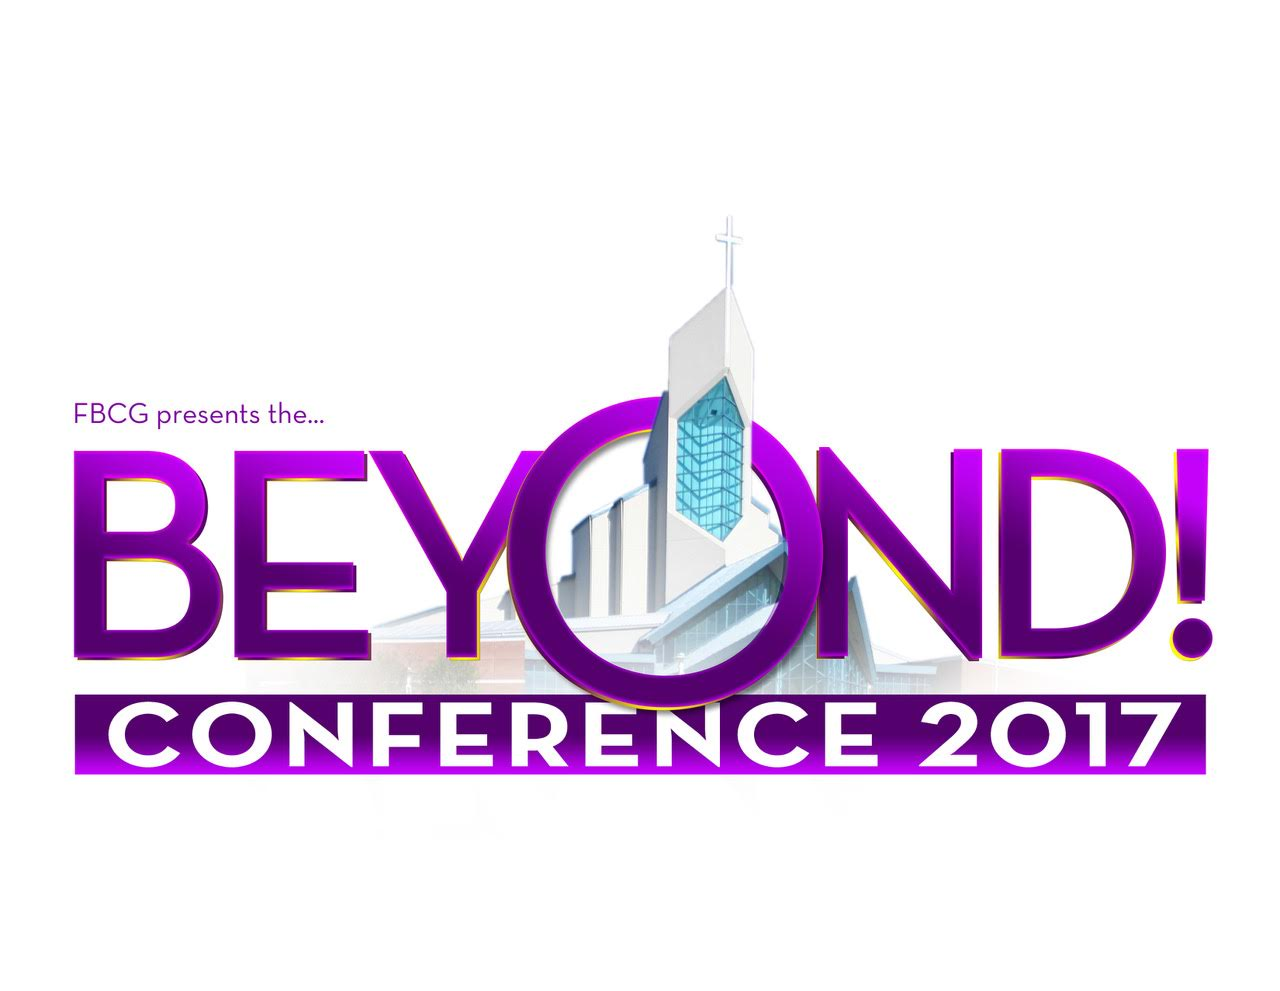 Beyond! Conference 2017